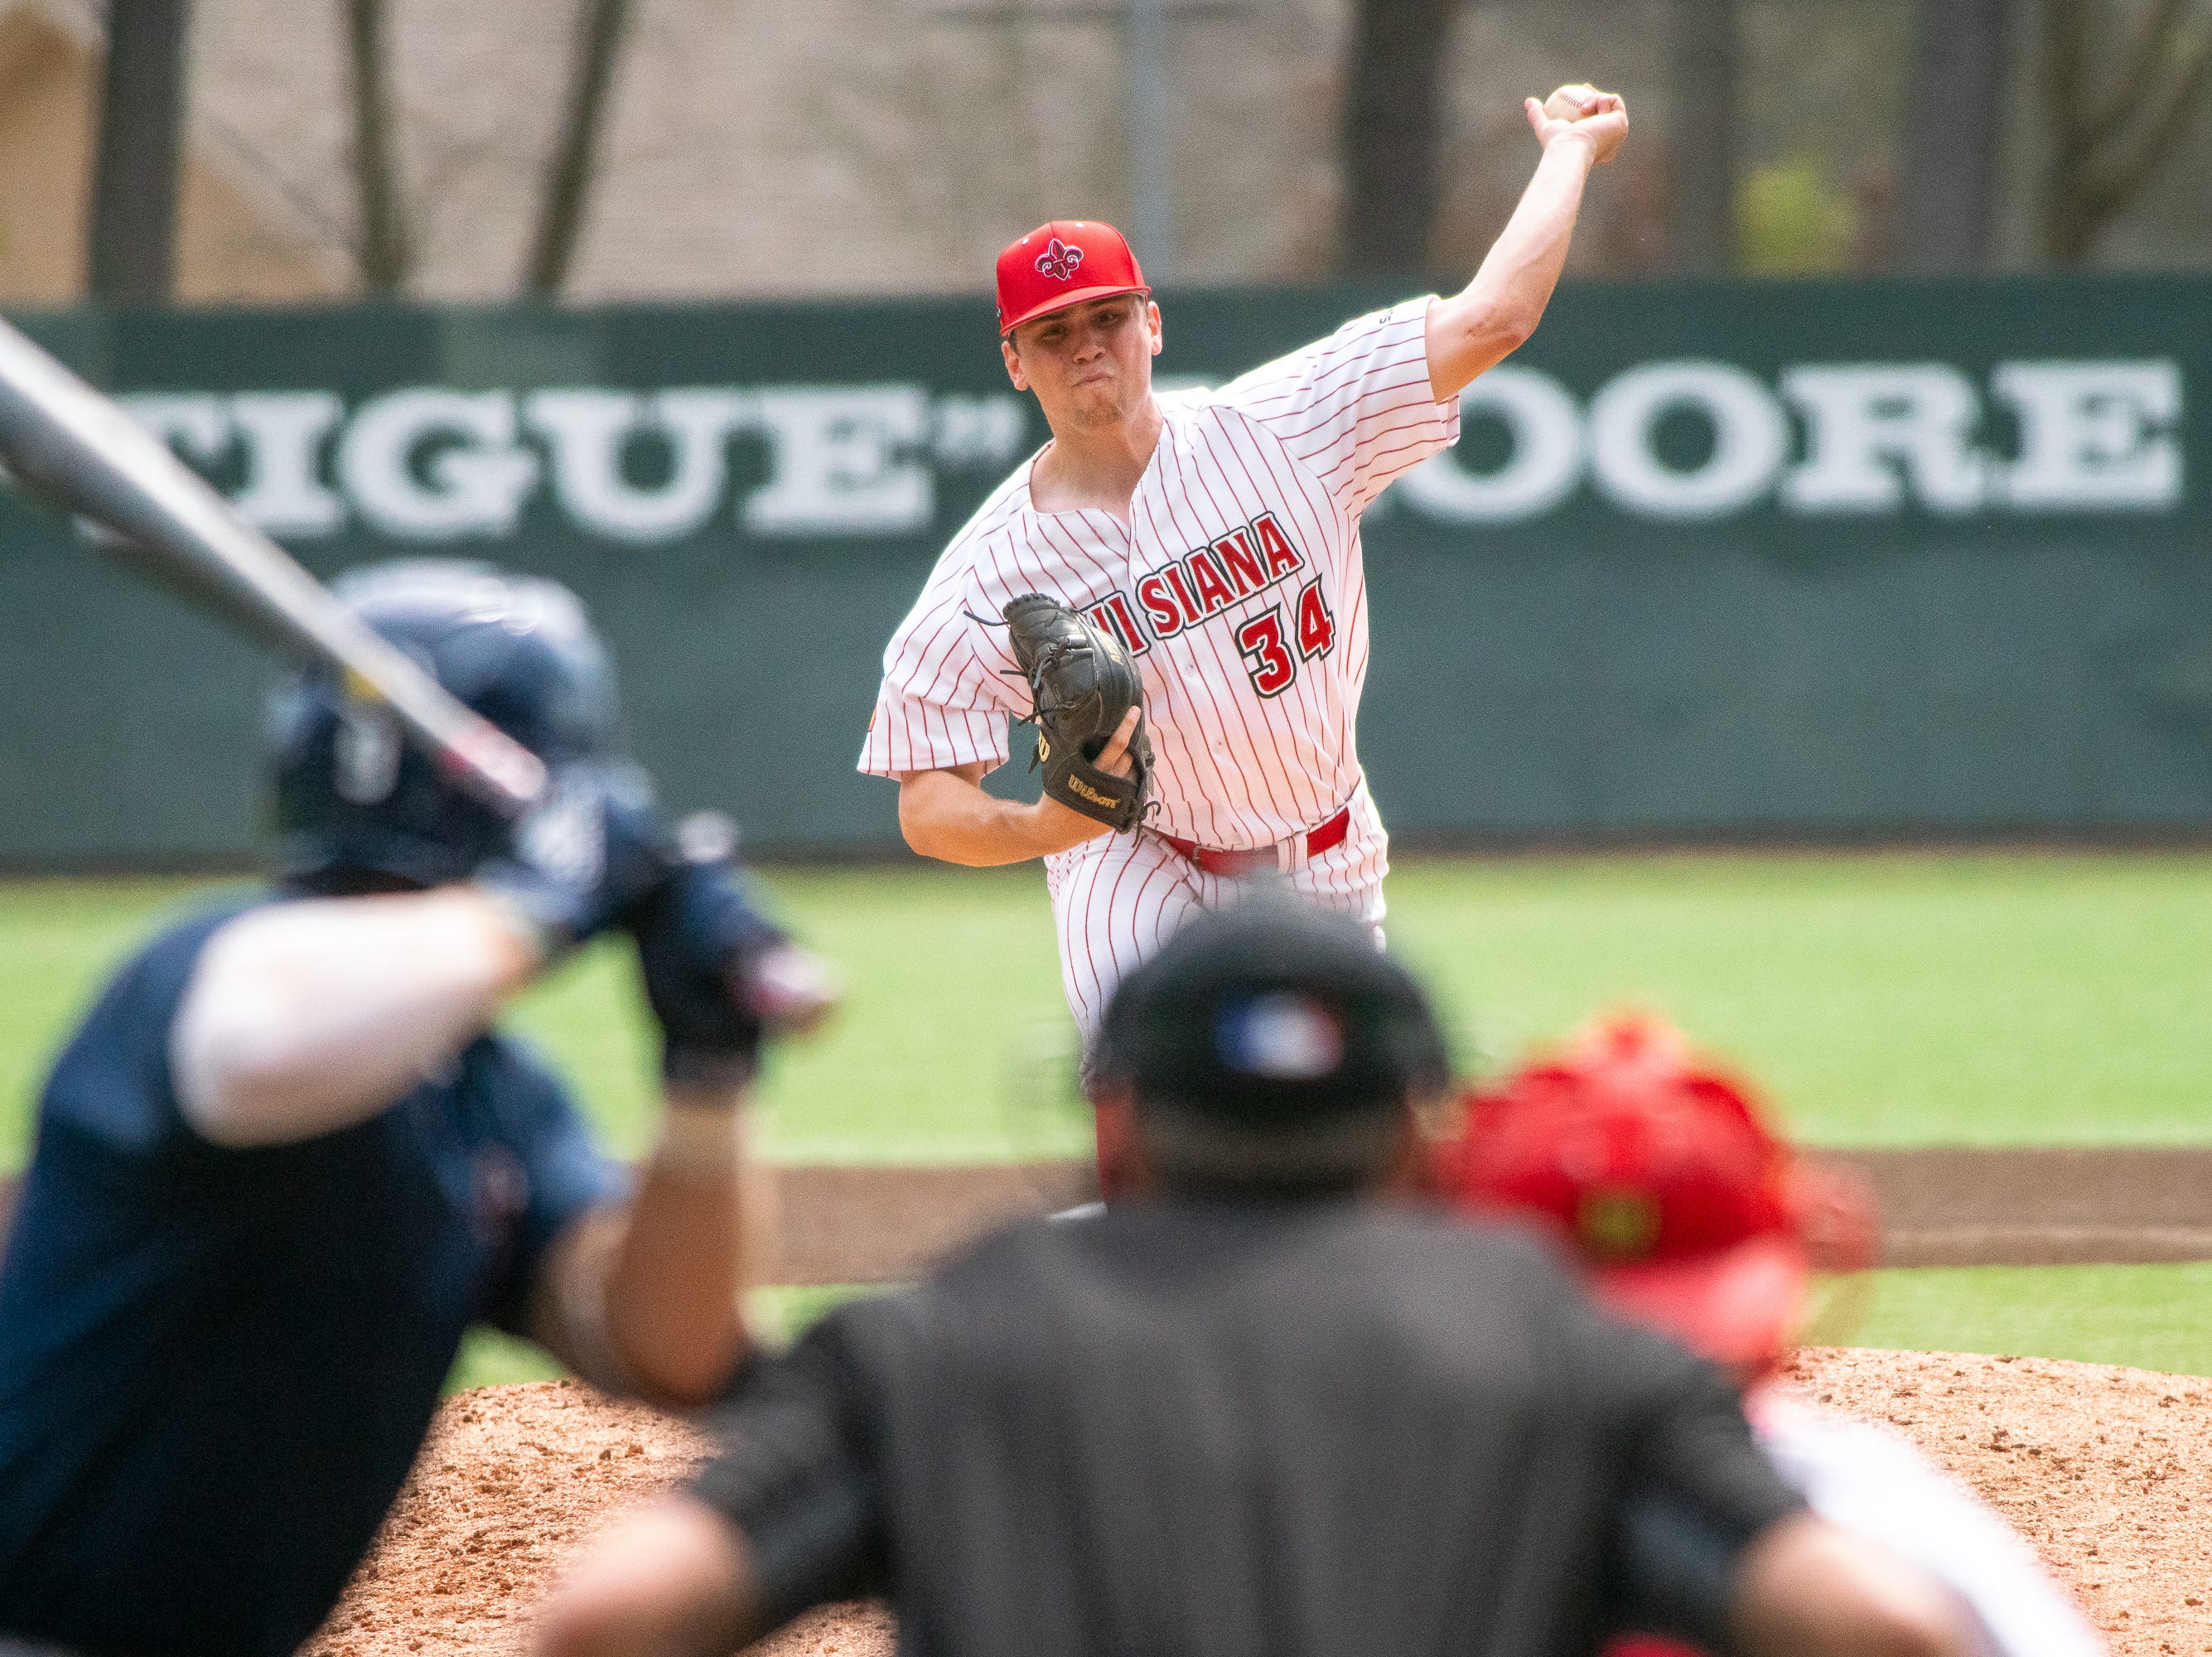 UL's Grant Cox pitches to the batter as the Ragin' Cajuns take on the Loyola Marymount Lions at M.L. Tigue Moore Field on March 10, 2019.